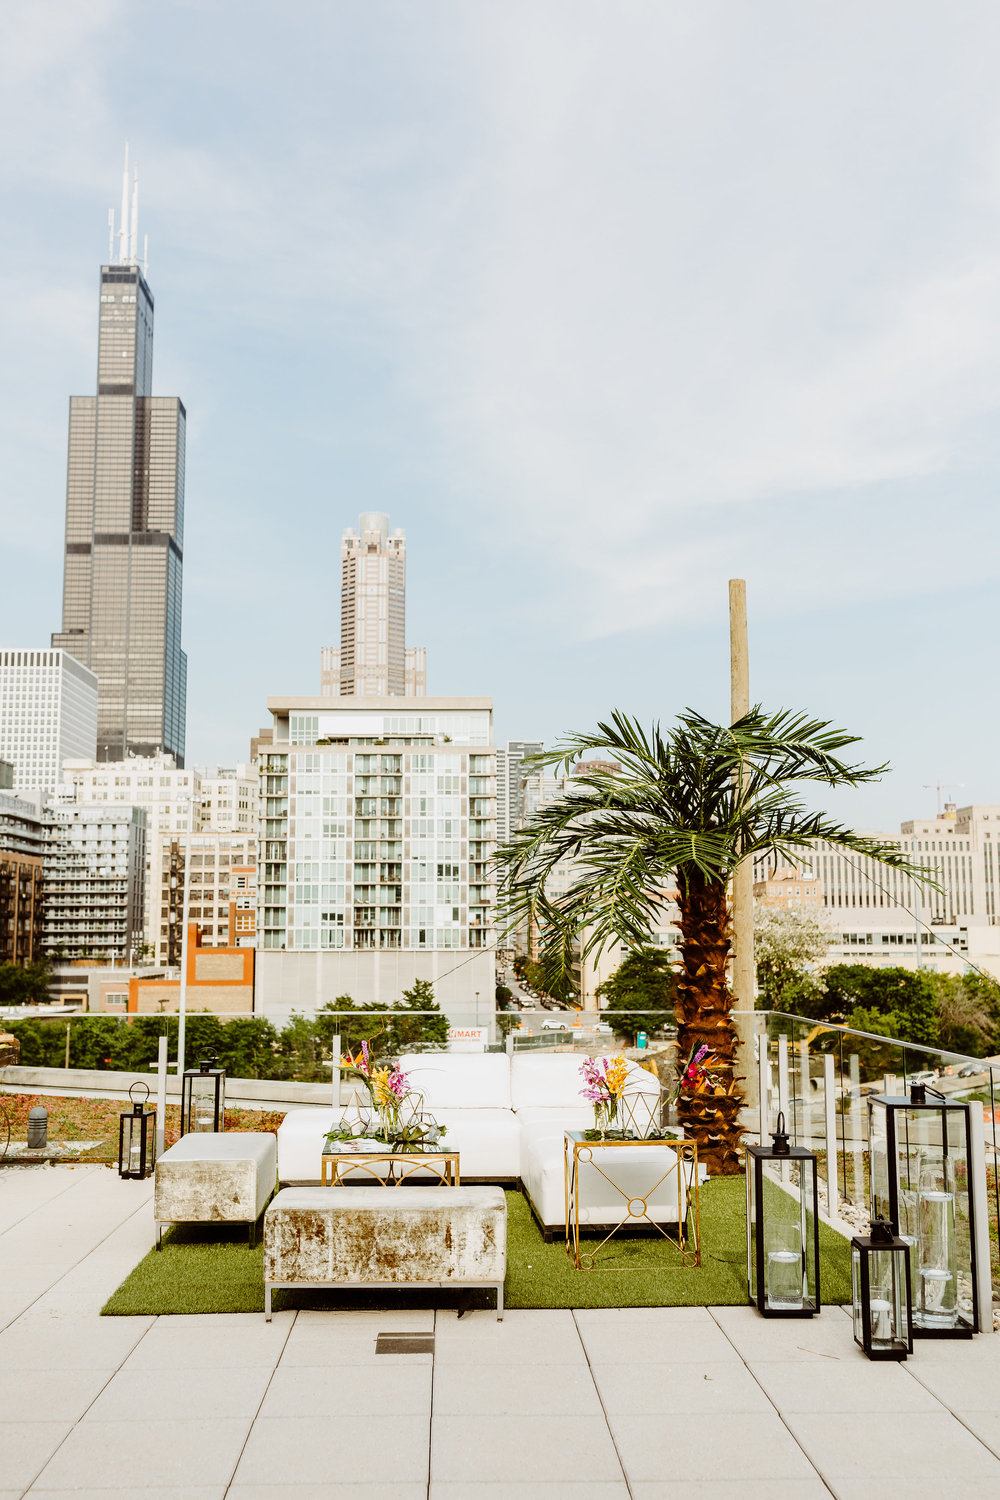 Clover_Events_Chicago_Wedding_Elizabeth Greve Photo2.jpg